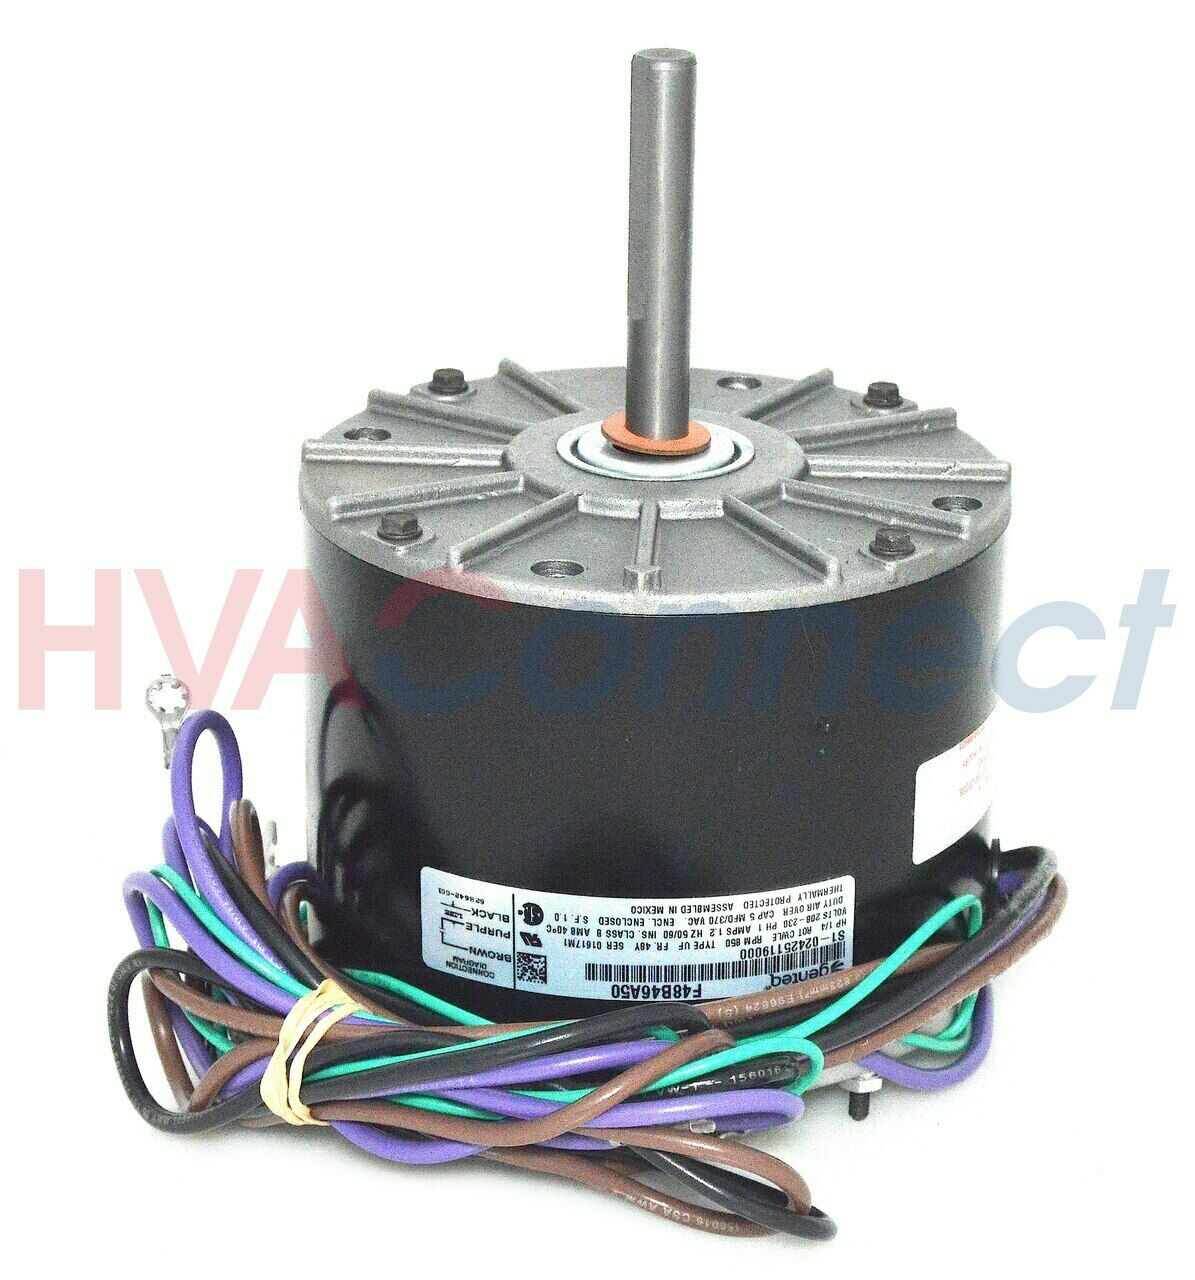 Oem Ao Smith Aosmith York Coleman Condenser Fan Motor 14 Hp 208. 1 Of 1only 4 Available. Wiring. Coleman Brcs0481bd Capacitor Wire Diagram At Scoala.co